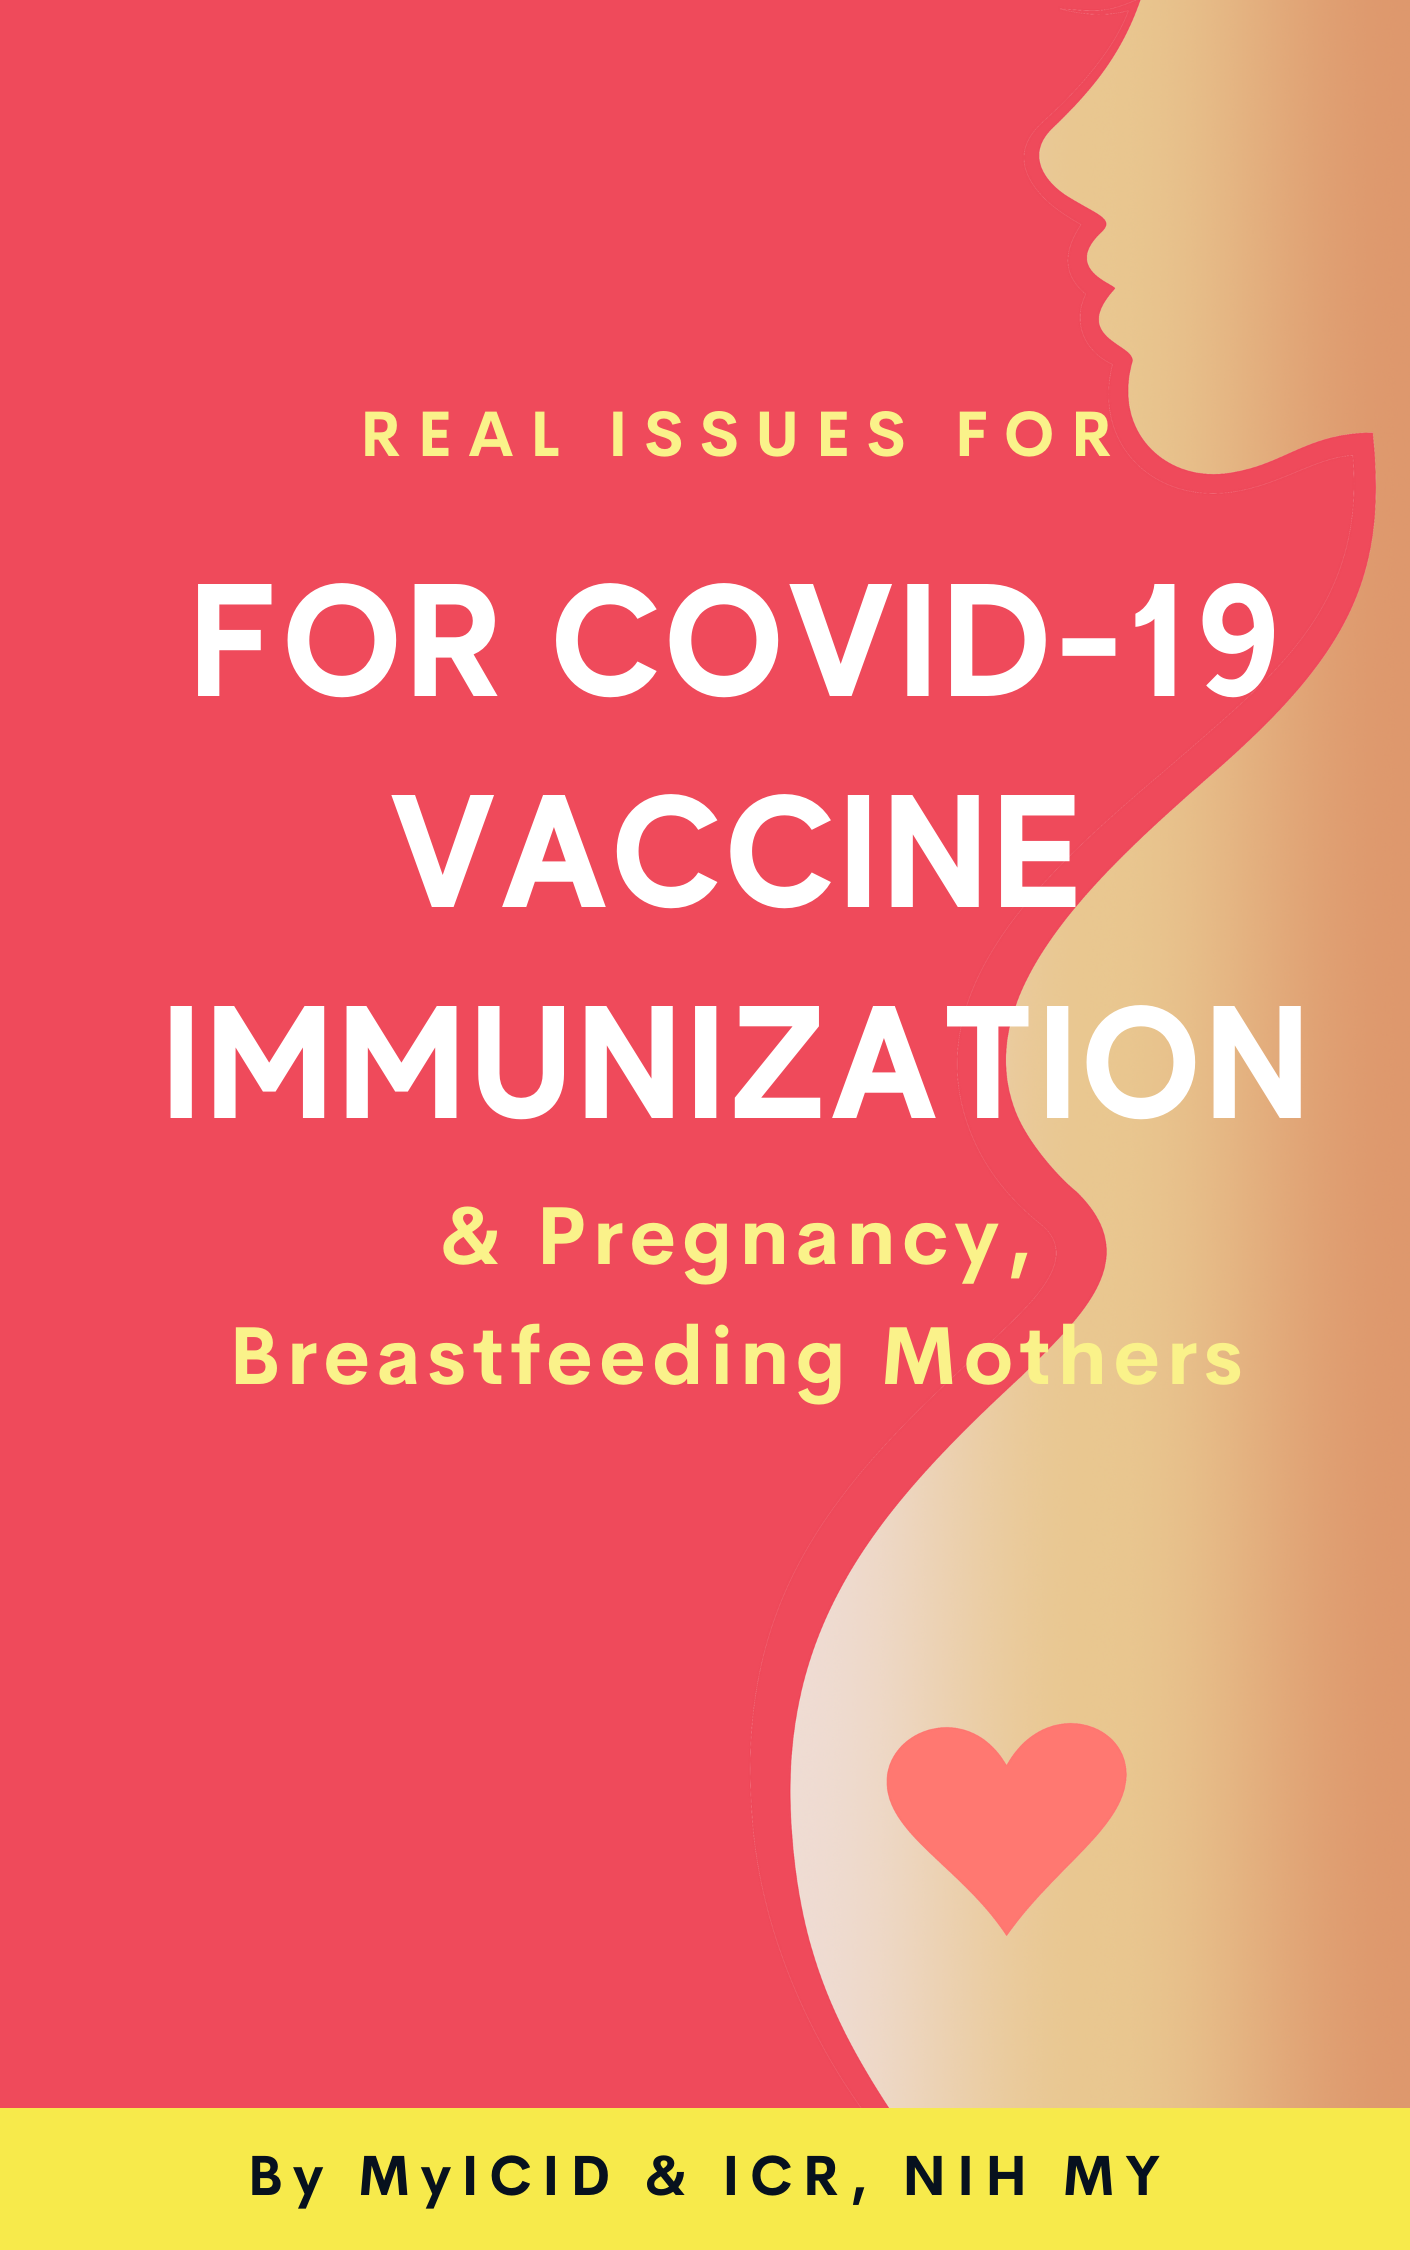 Guidelines on COVID-19 Vaccination for pregnant and breastfeeding mothers